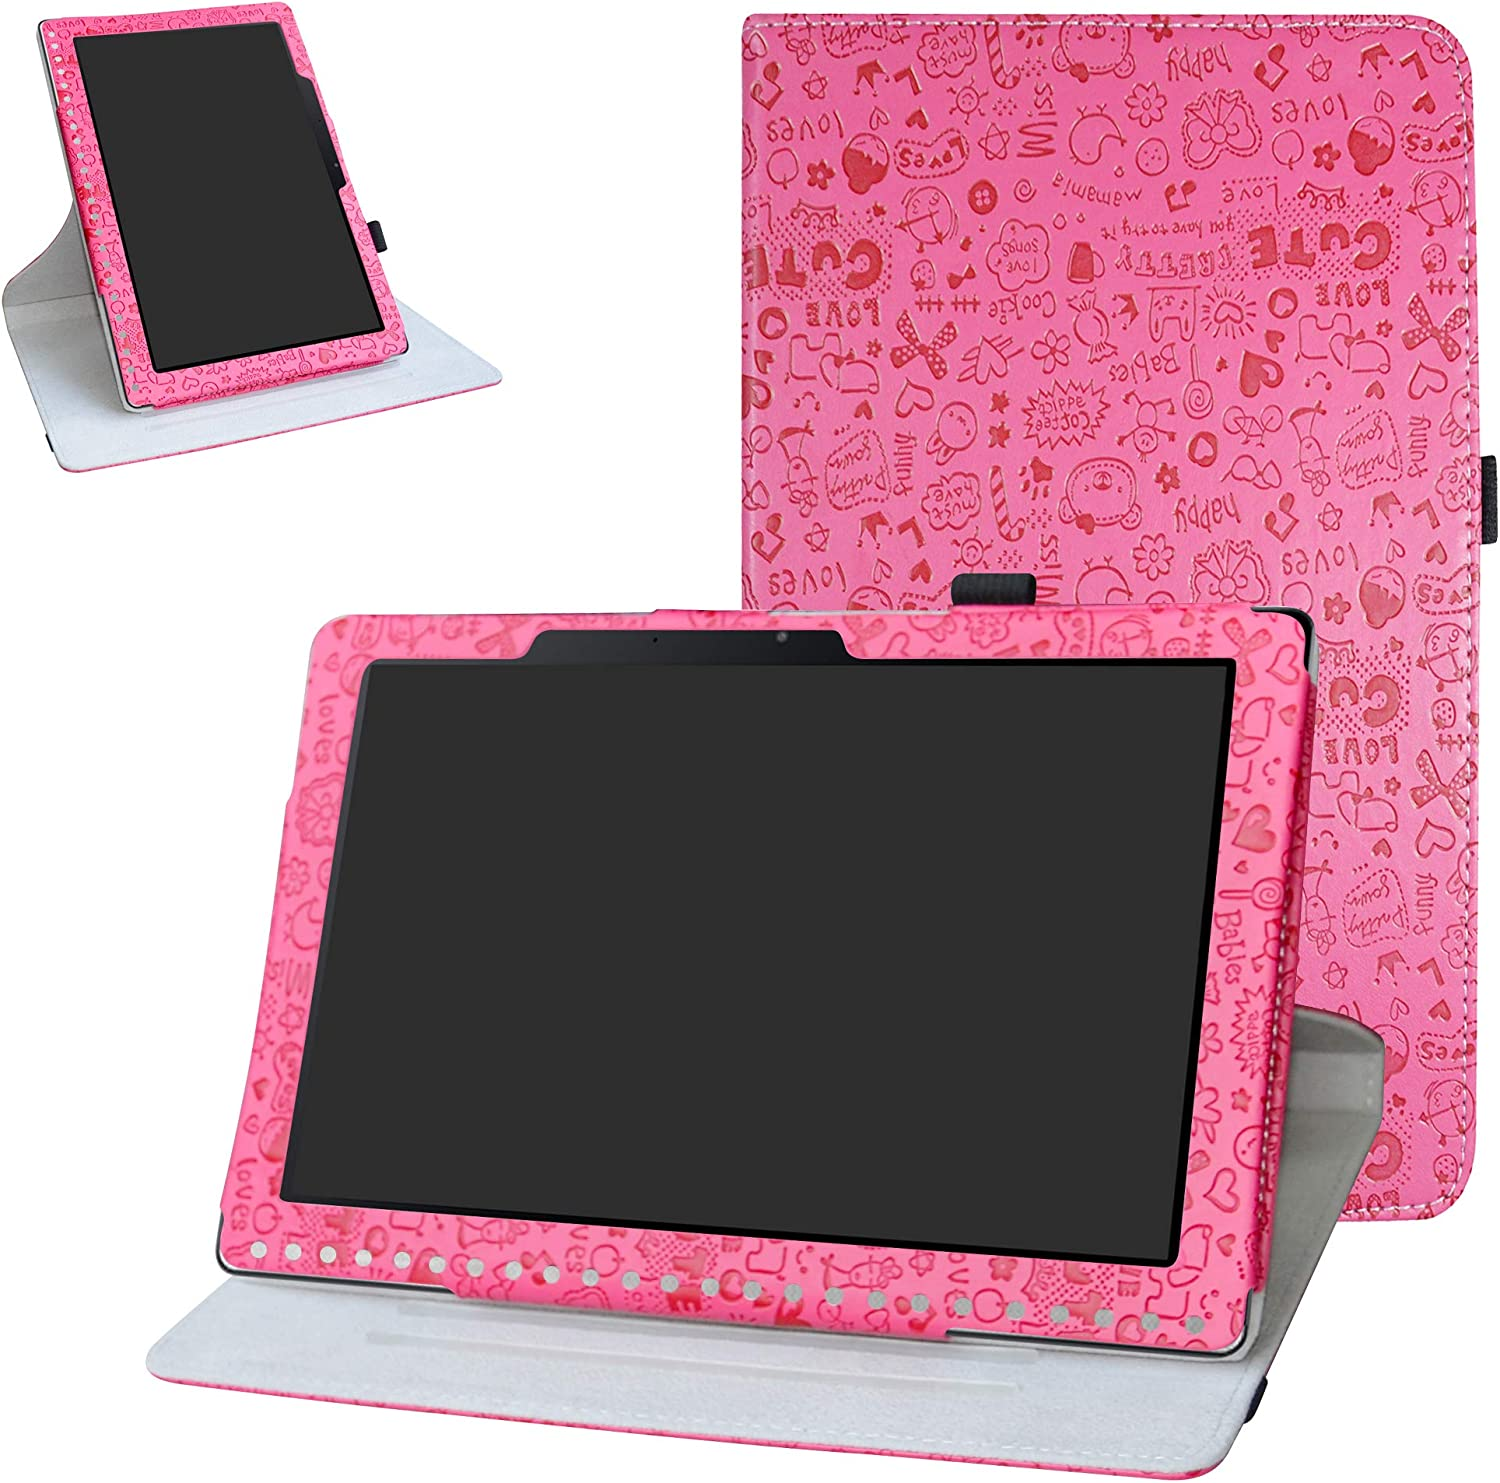 Acer Iconia One 10 B3-A50 Rotating Case,Bige 360 Degree Rotary Stand with Cute Pattern Cover for Acer Iconia One 10 B3-A50 10.1 inch 2018 Tablet (Not fit Acer A3-A50),Rose Red